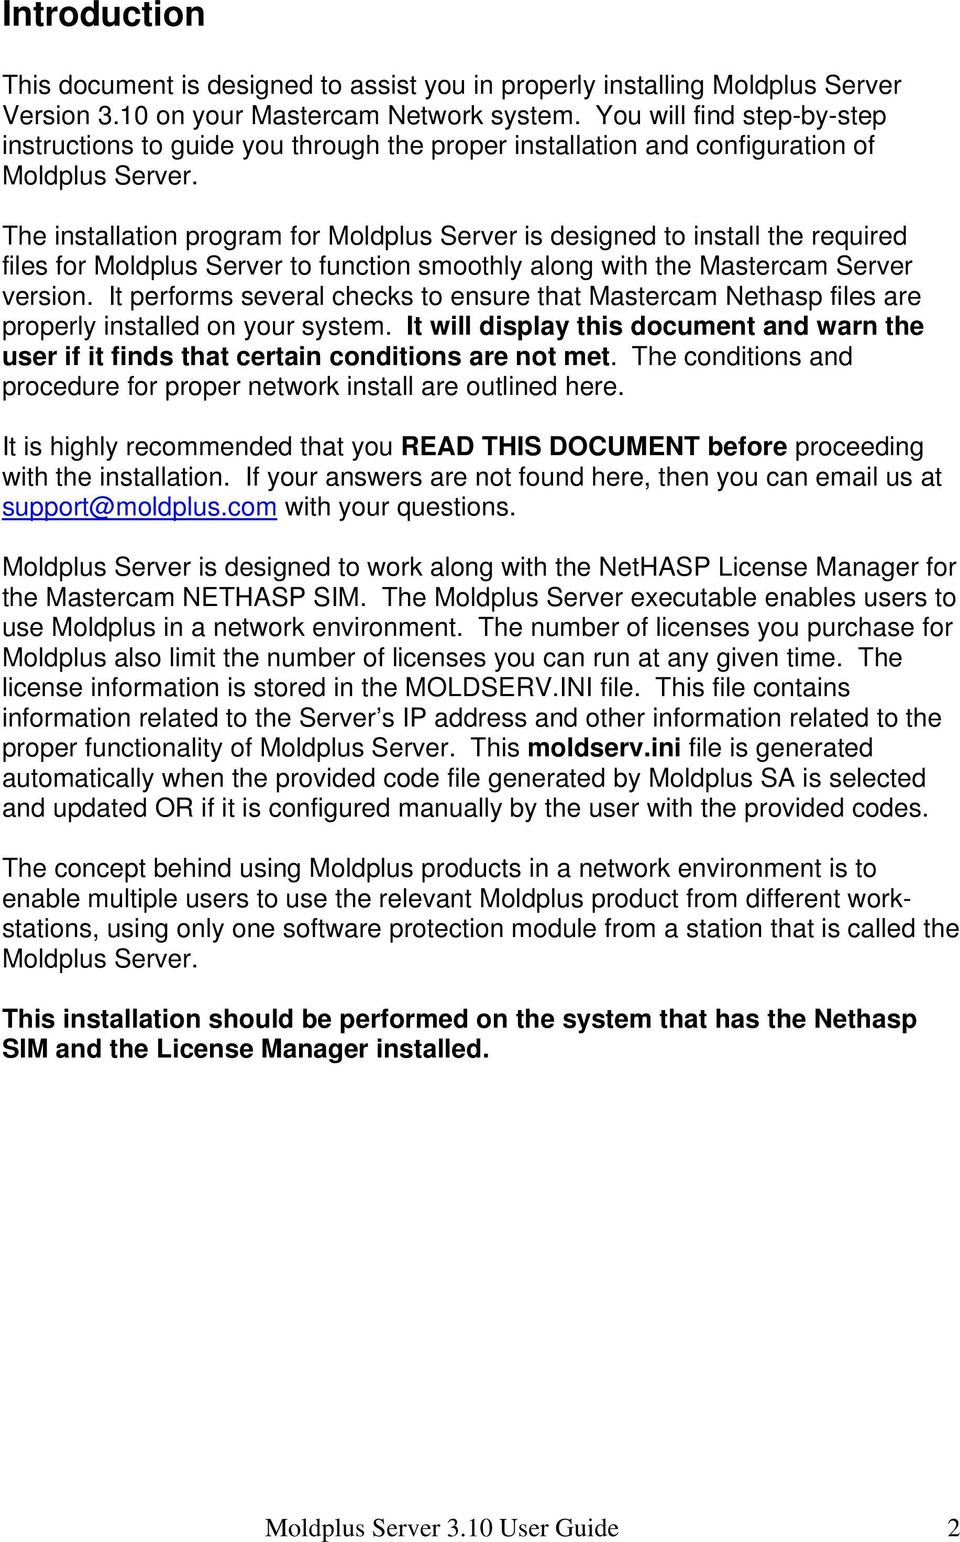 Moldplus Server Installation Guide Version 3 10 Revision date